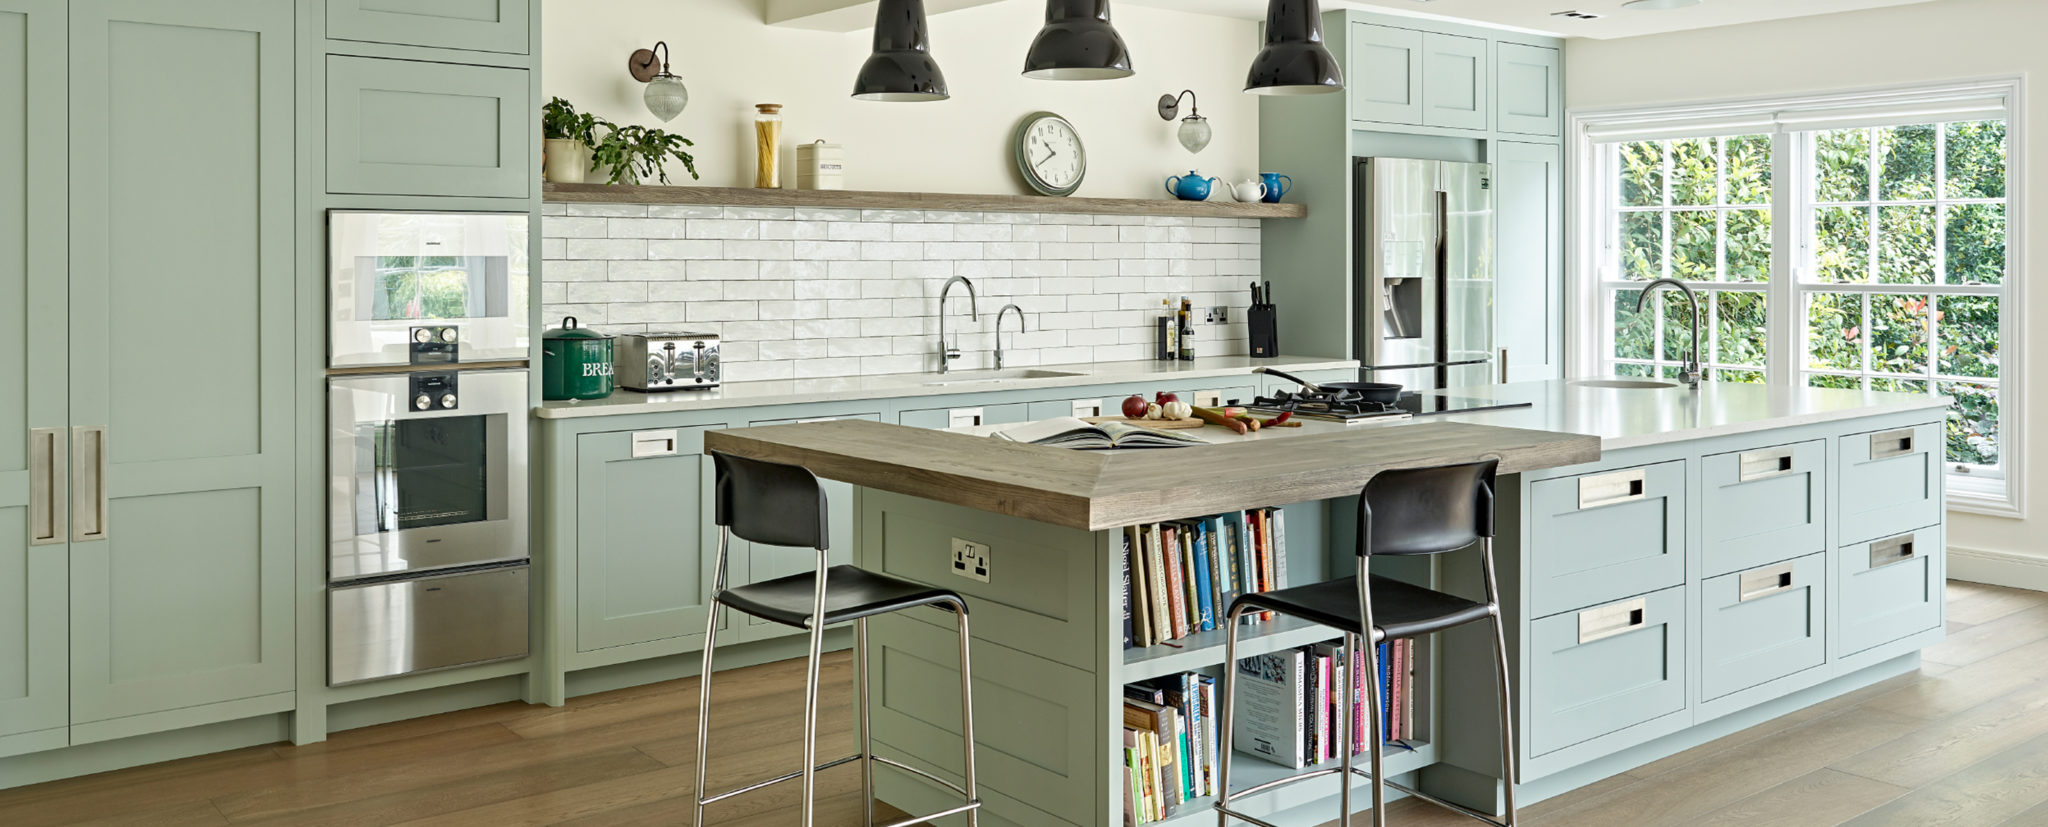 Pale green modern shaker style kitchen renovation with large island, wall mounted ovens, breakfast cupboard and metro tile splashblack